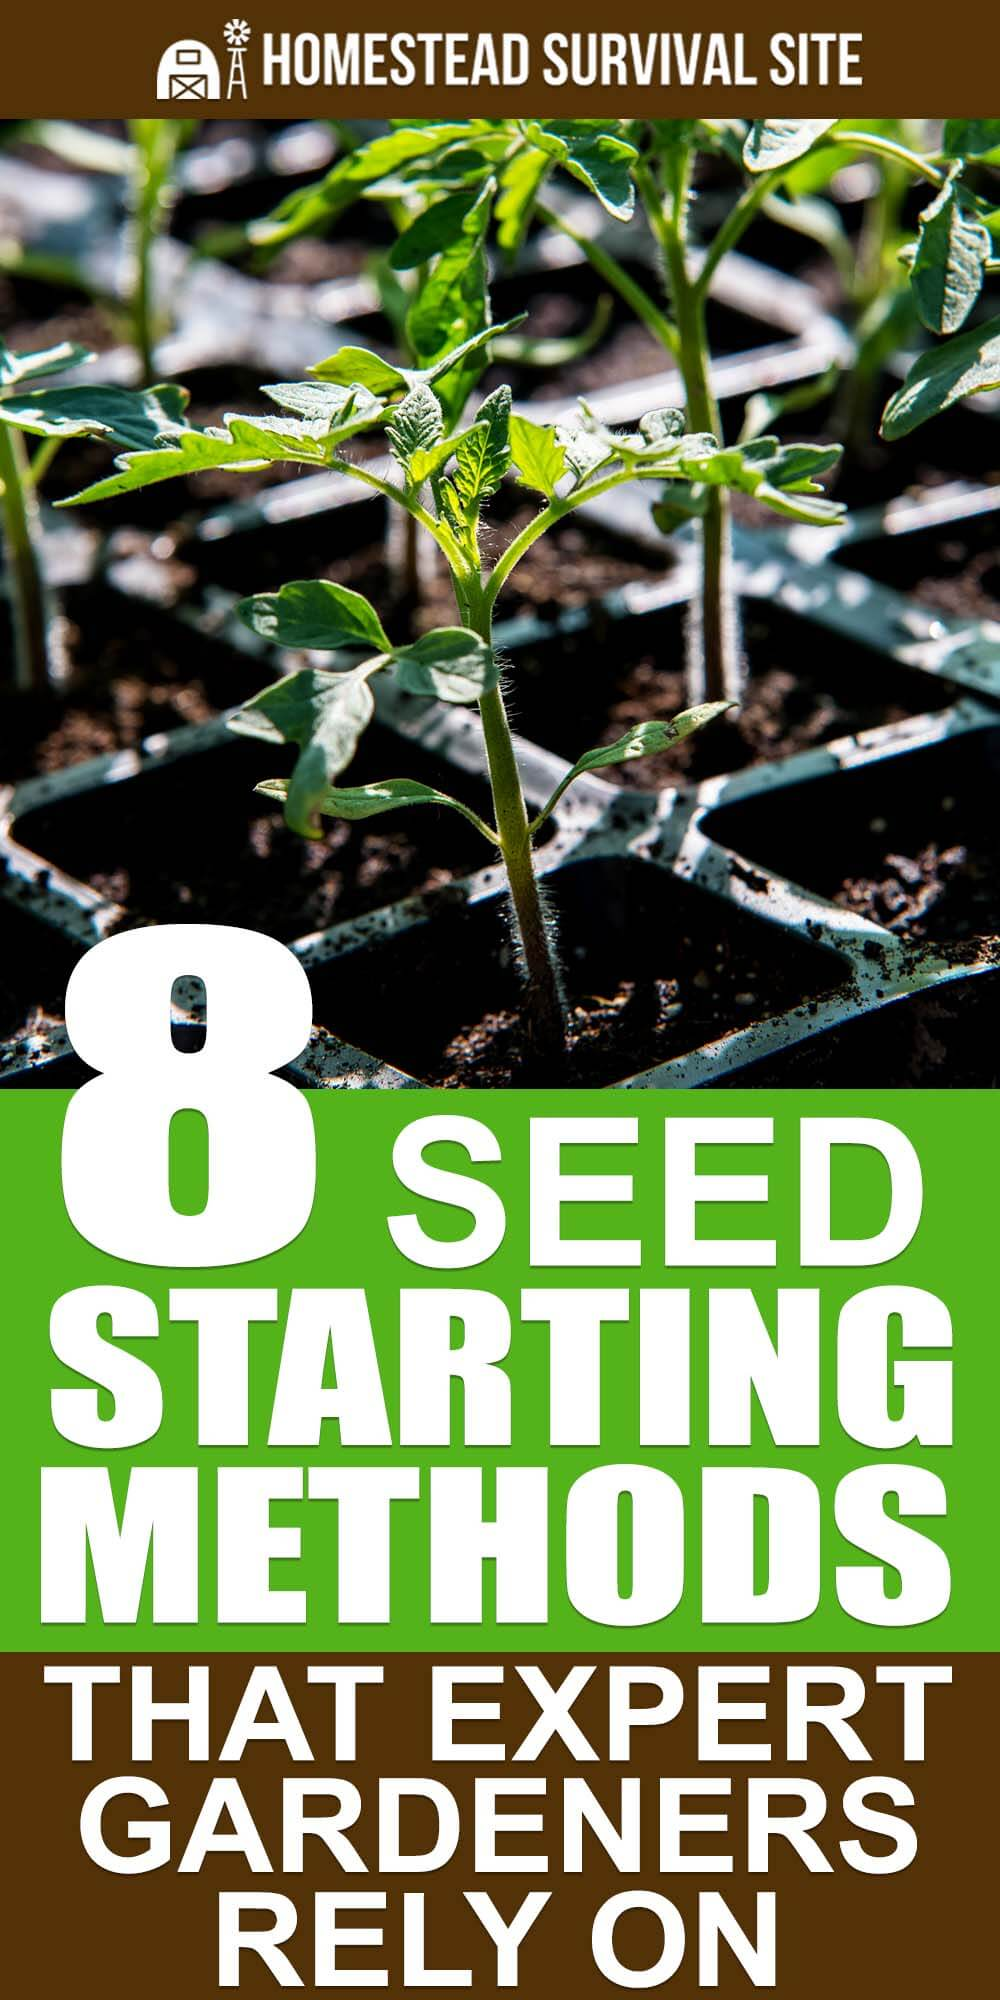 8 Seed Starting Methods That Expert Gardeners Rely On